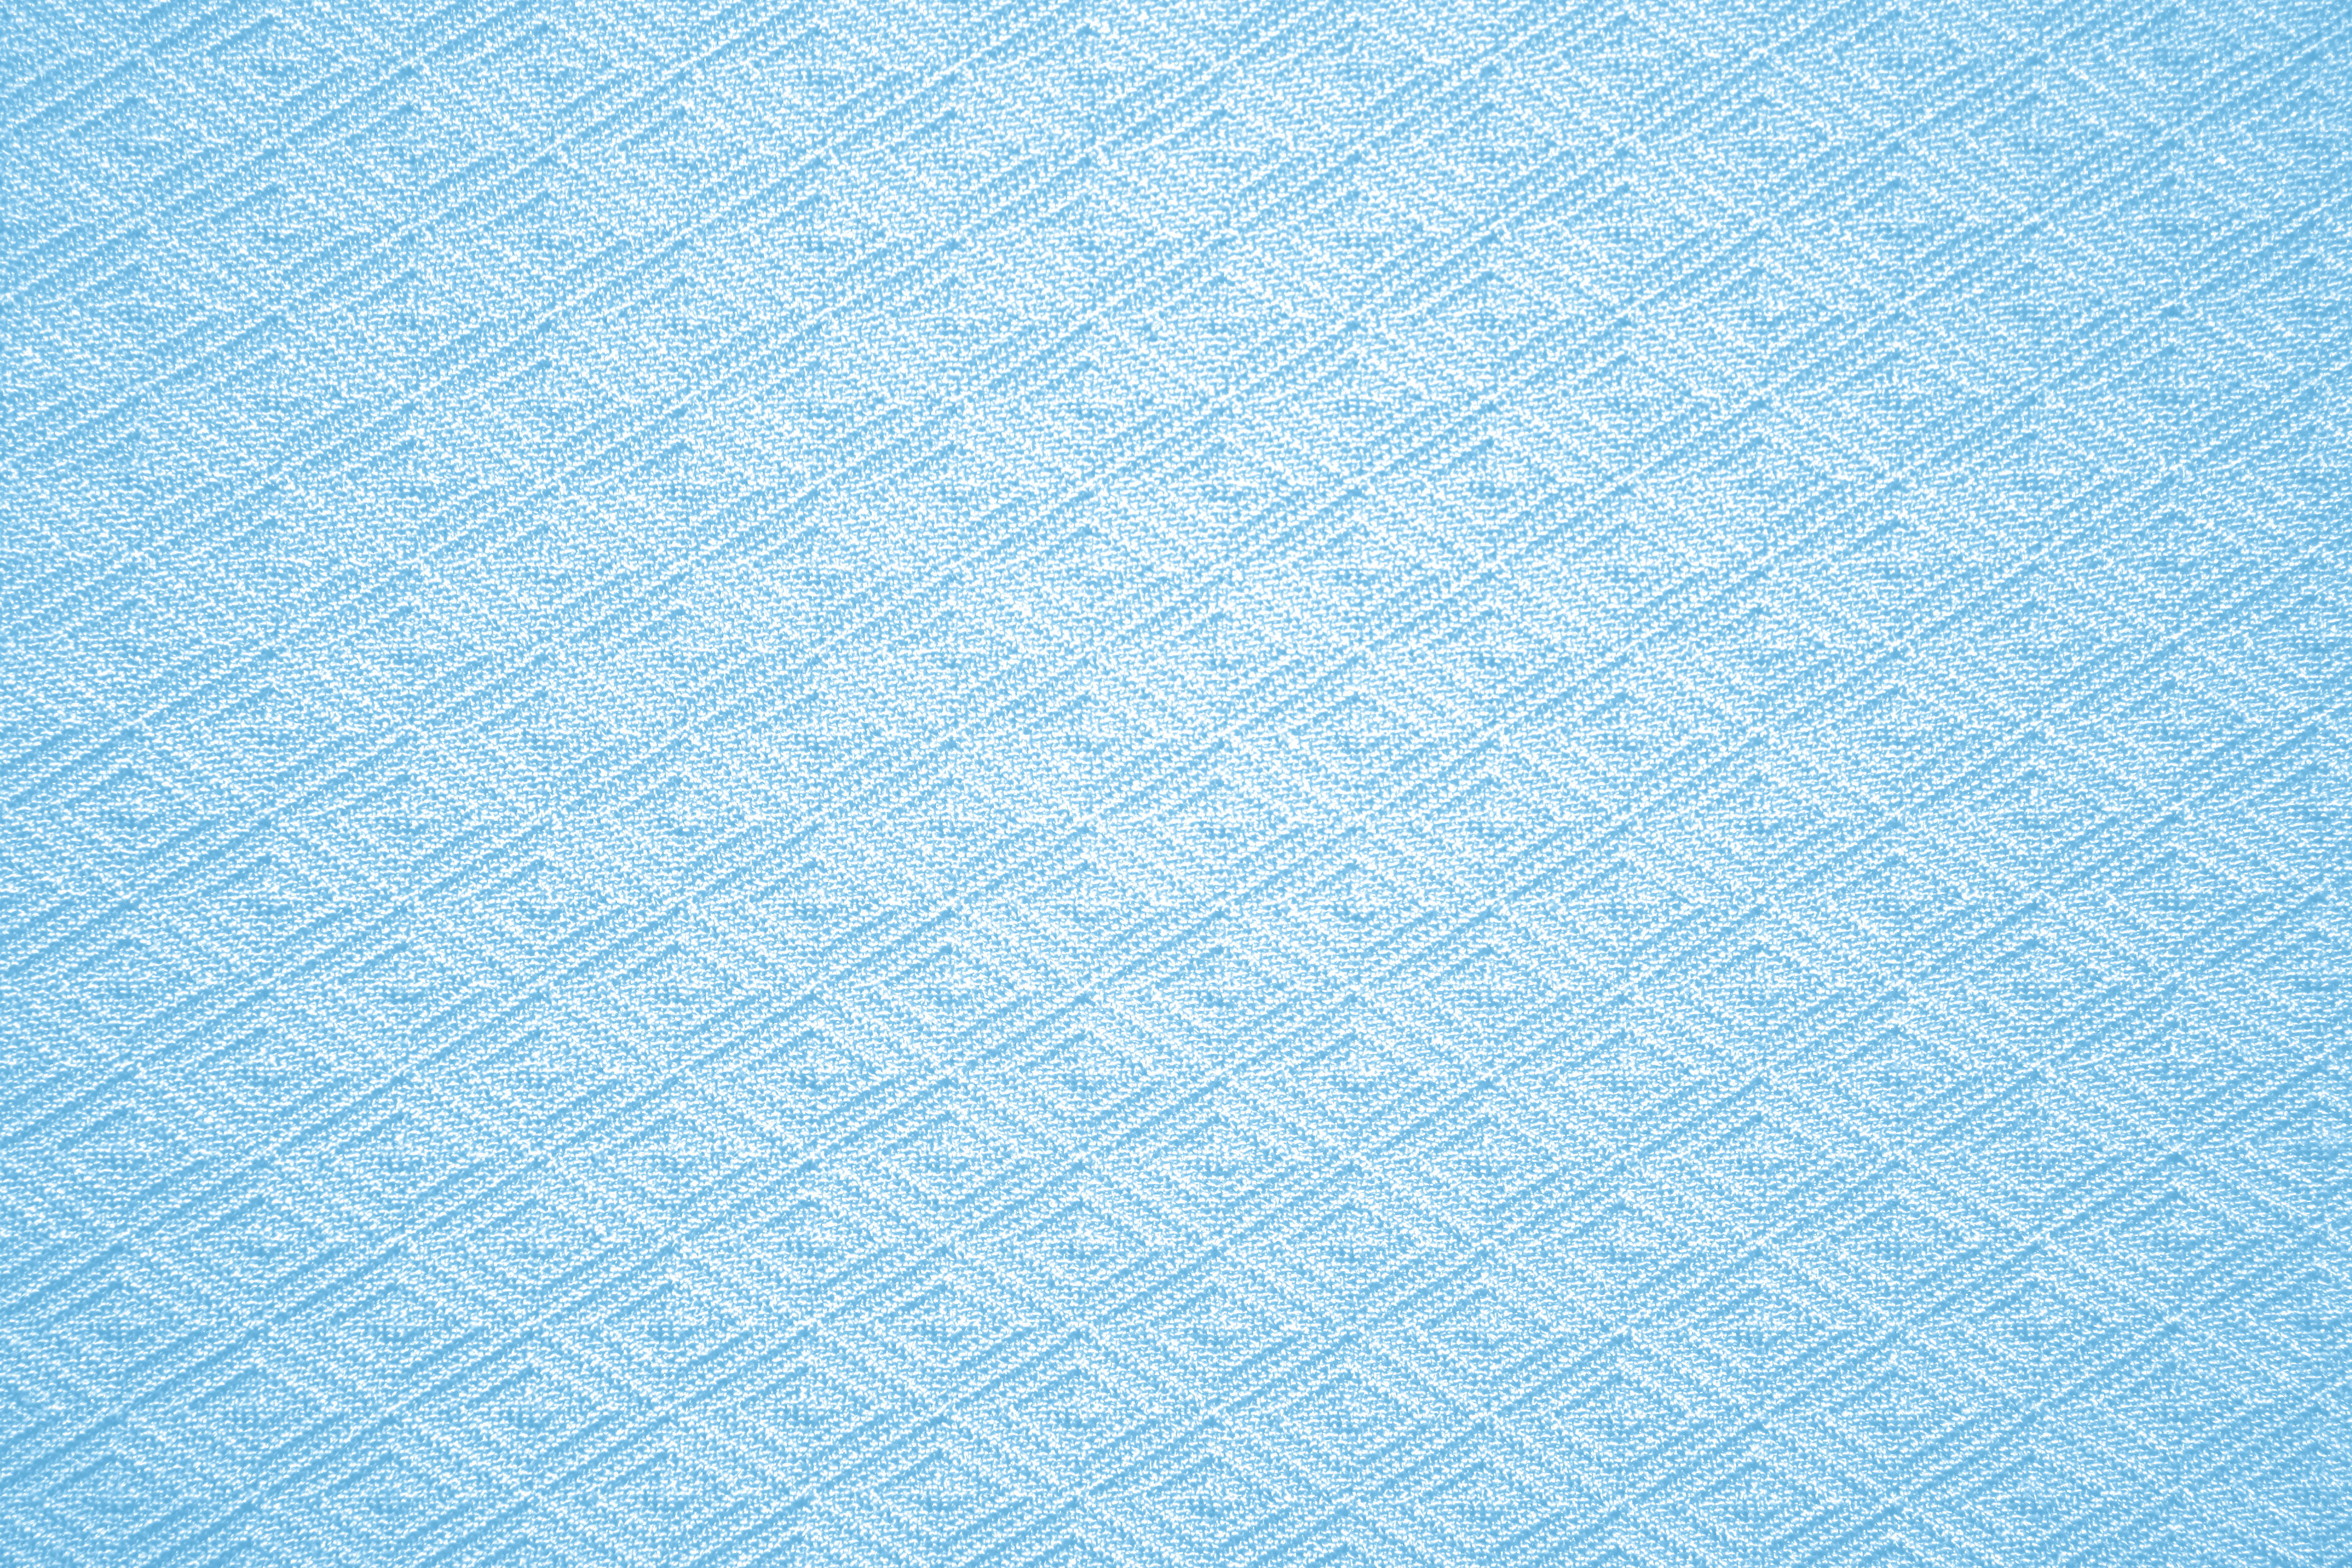 Baby Blue Knit Fabric with Diamond Pattern Texture Picture Free Photograph ...